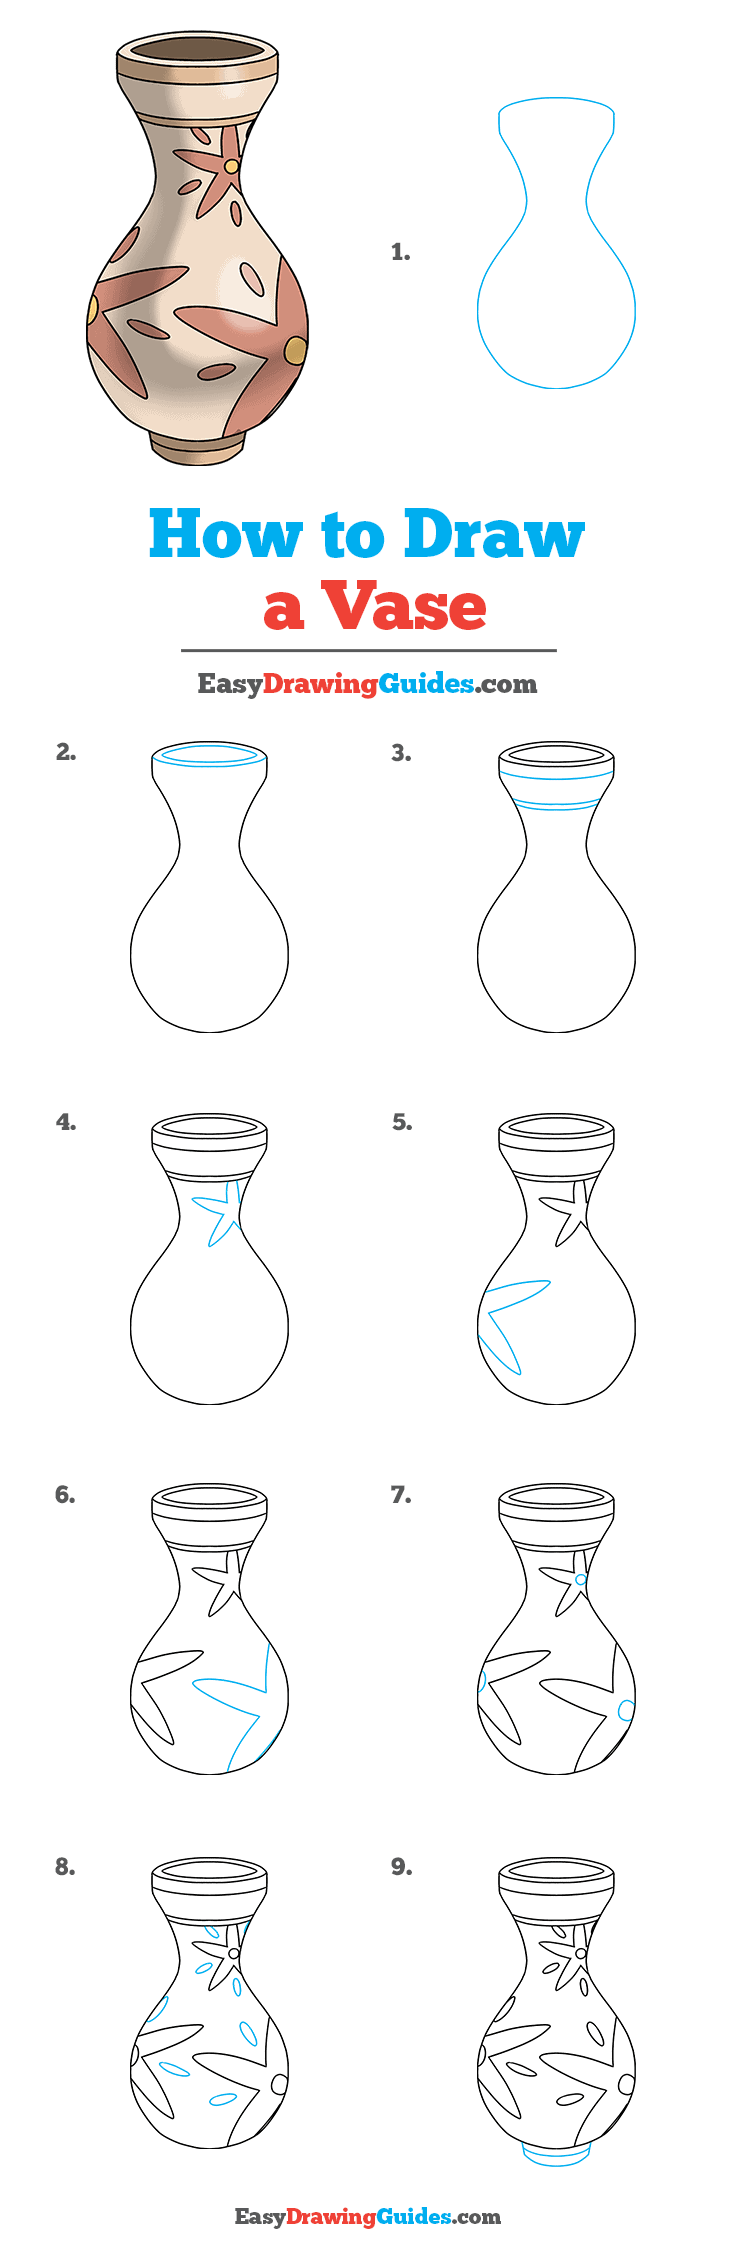 How to Draw Vase